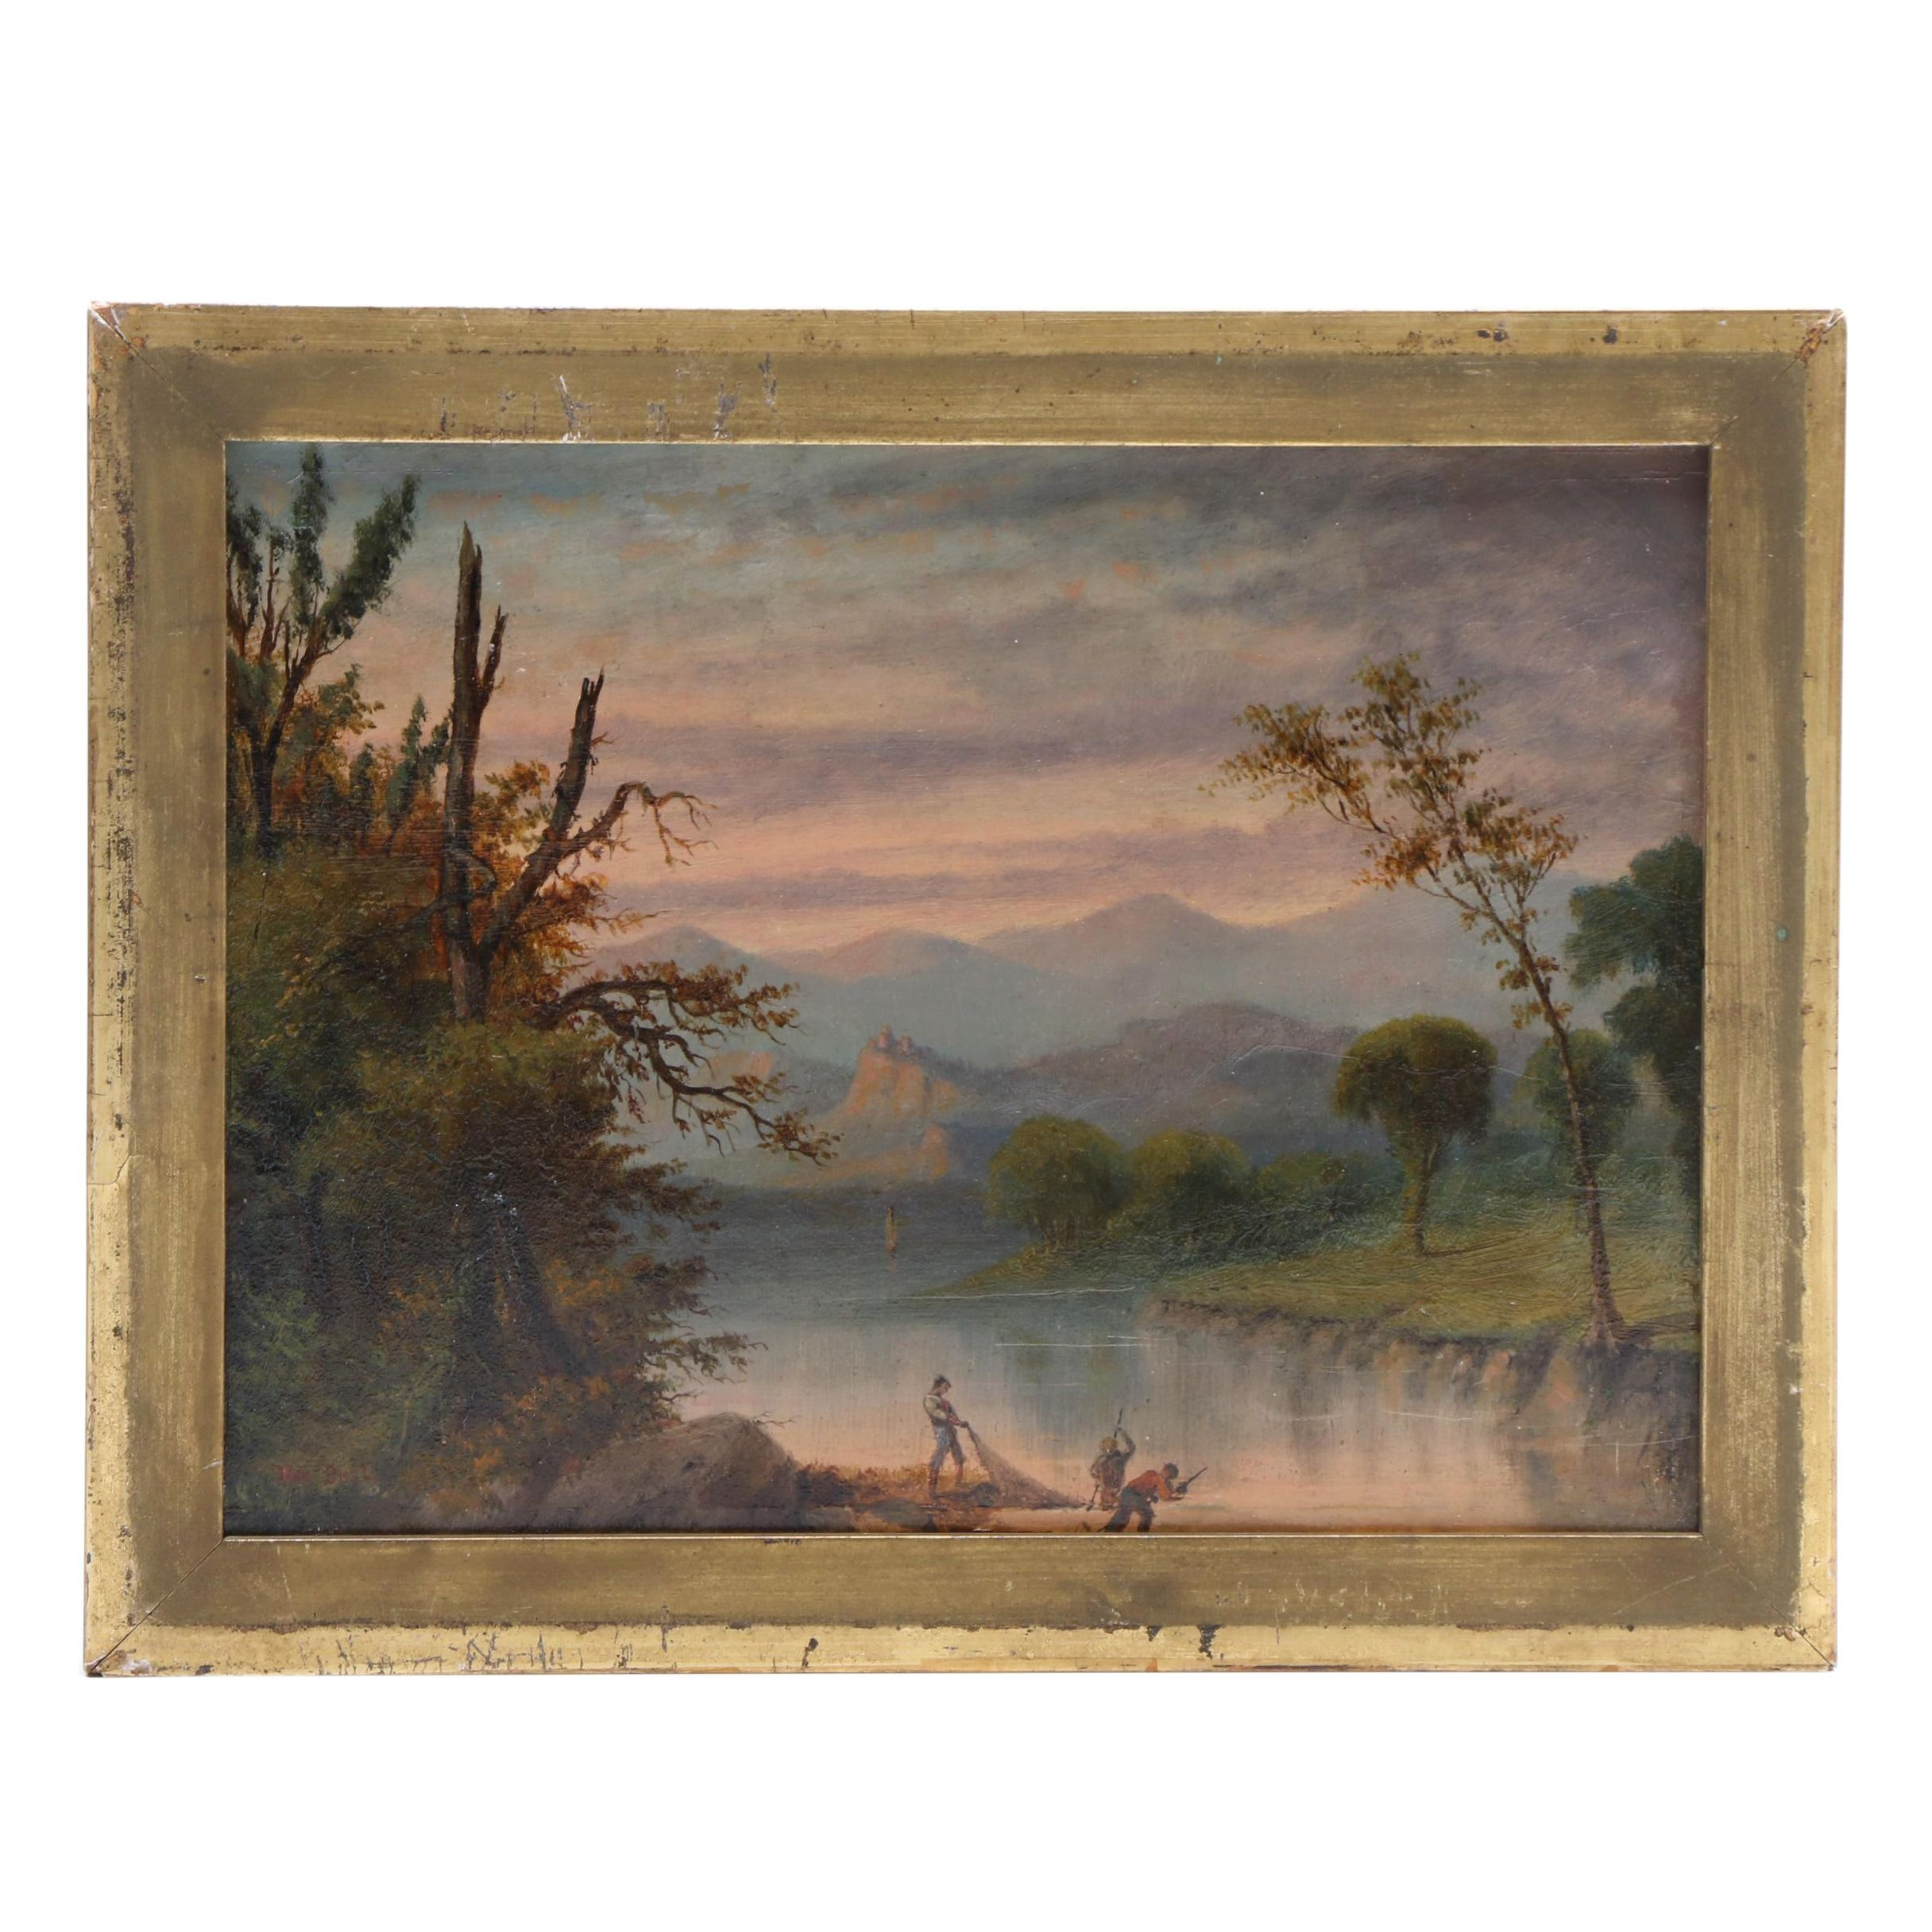 Late 19th-Century American Landscape Oil Painting